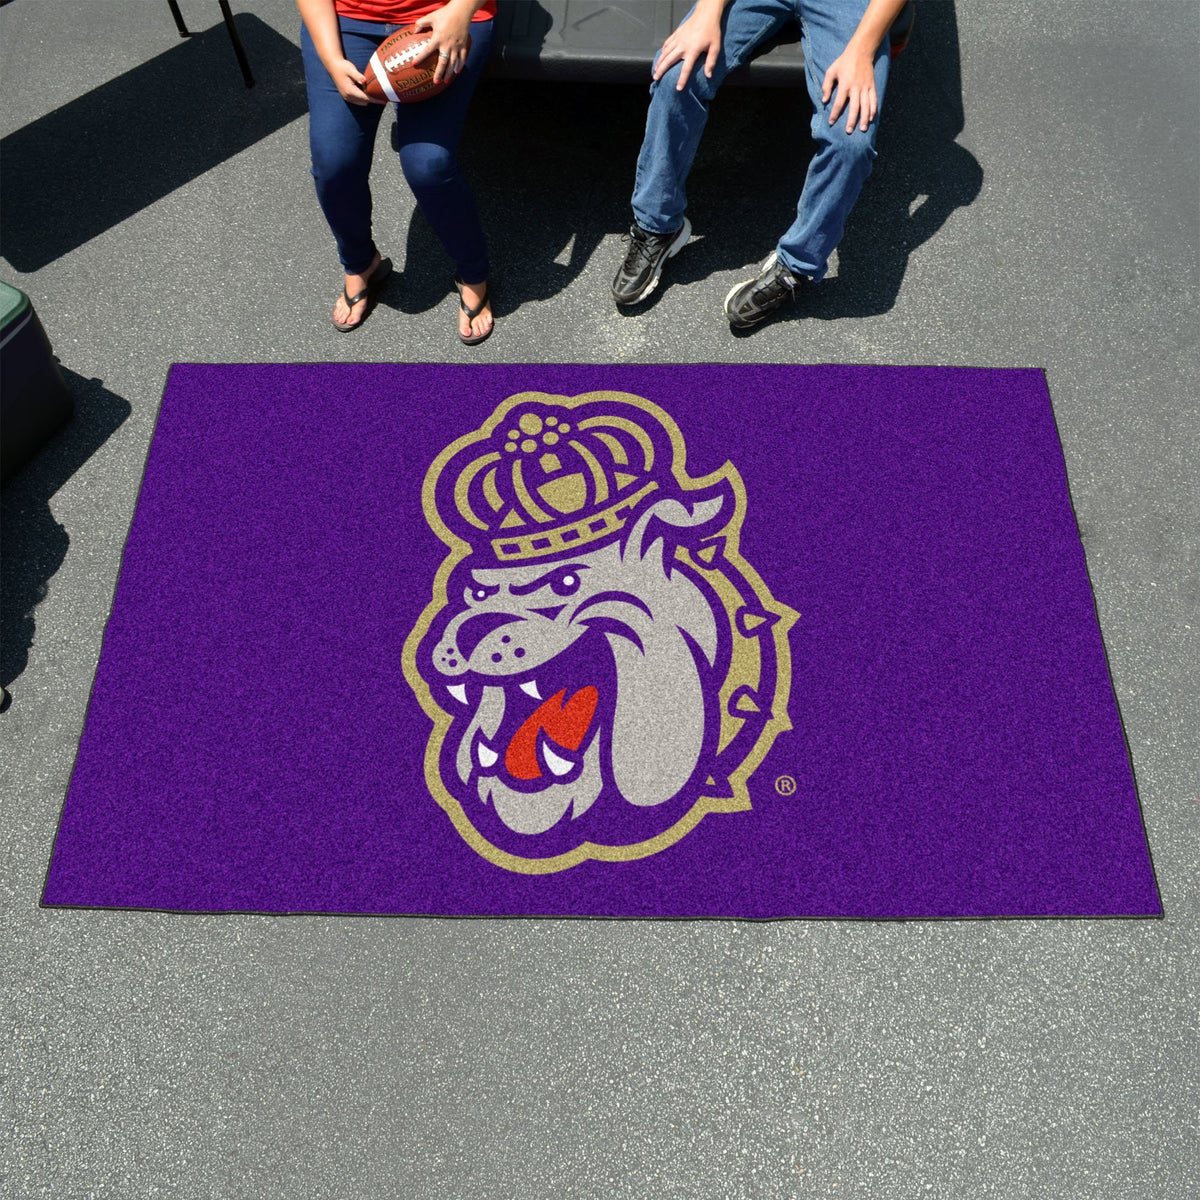 Collegiate - Ulti-Mat: A - L Collegiate Mats, Rectangular Mats, Ulti-Mat, Collegiate, Home Fan Mats James Madison